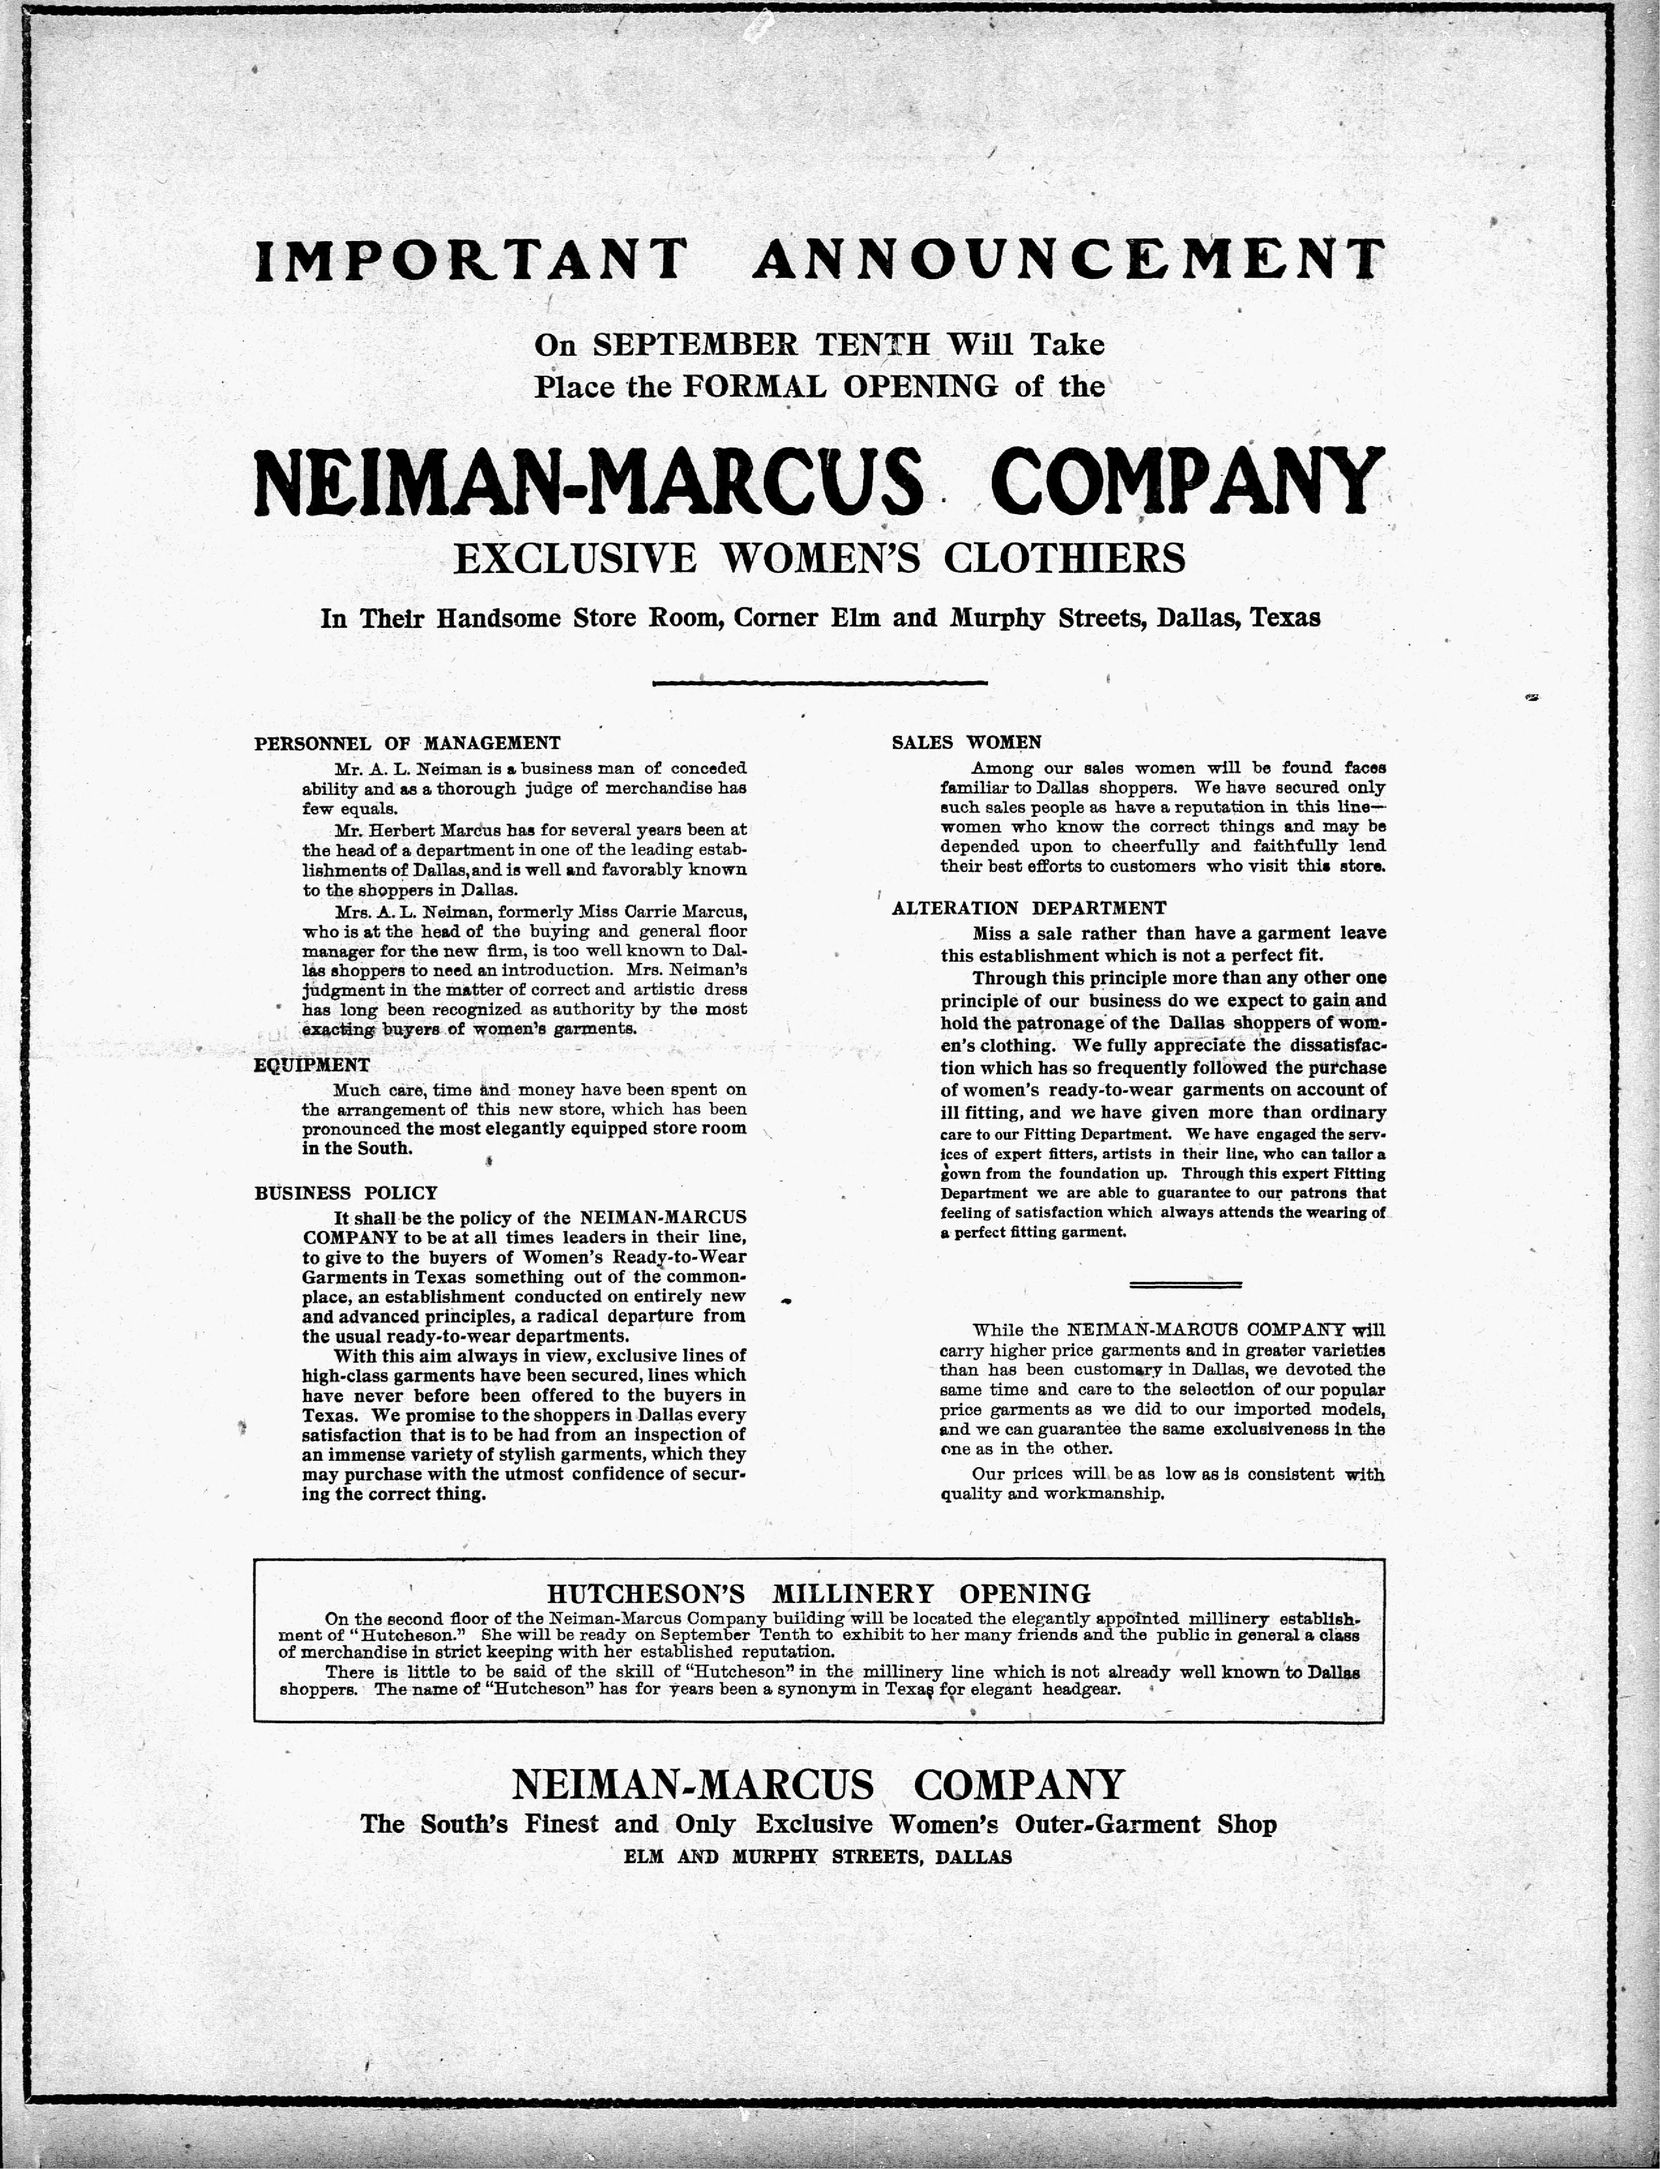 The announcement of the first Neiman Marcus store ran in The Dallas Morning News.